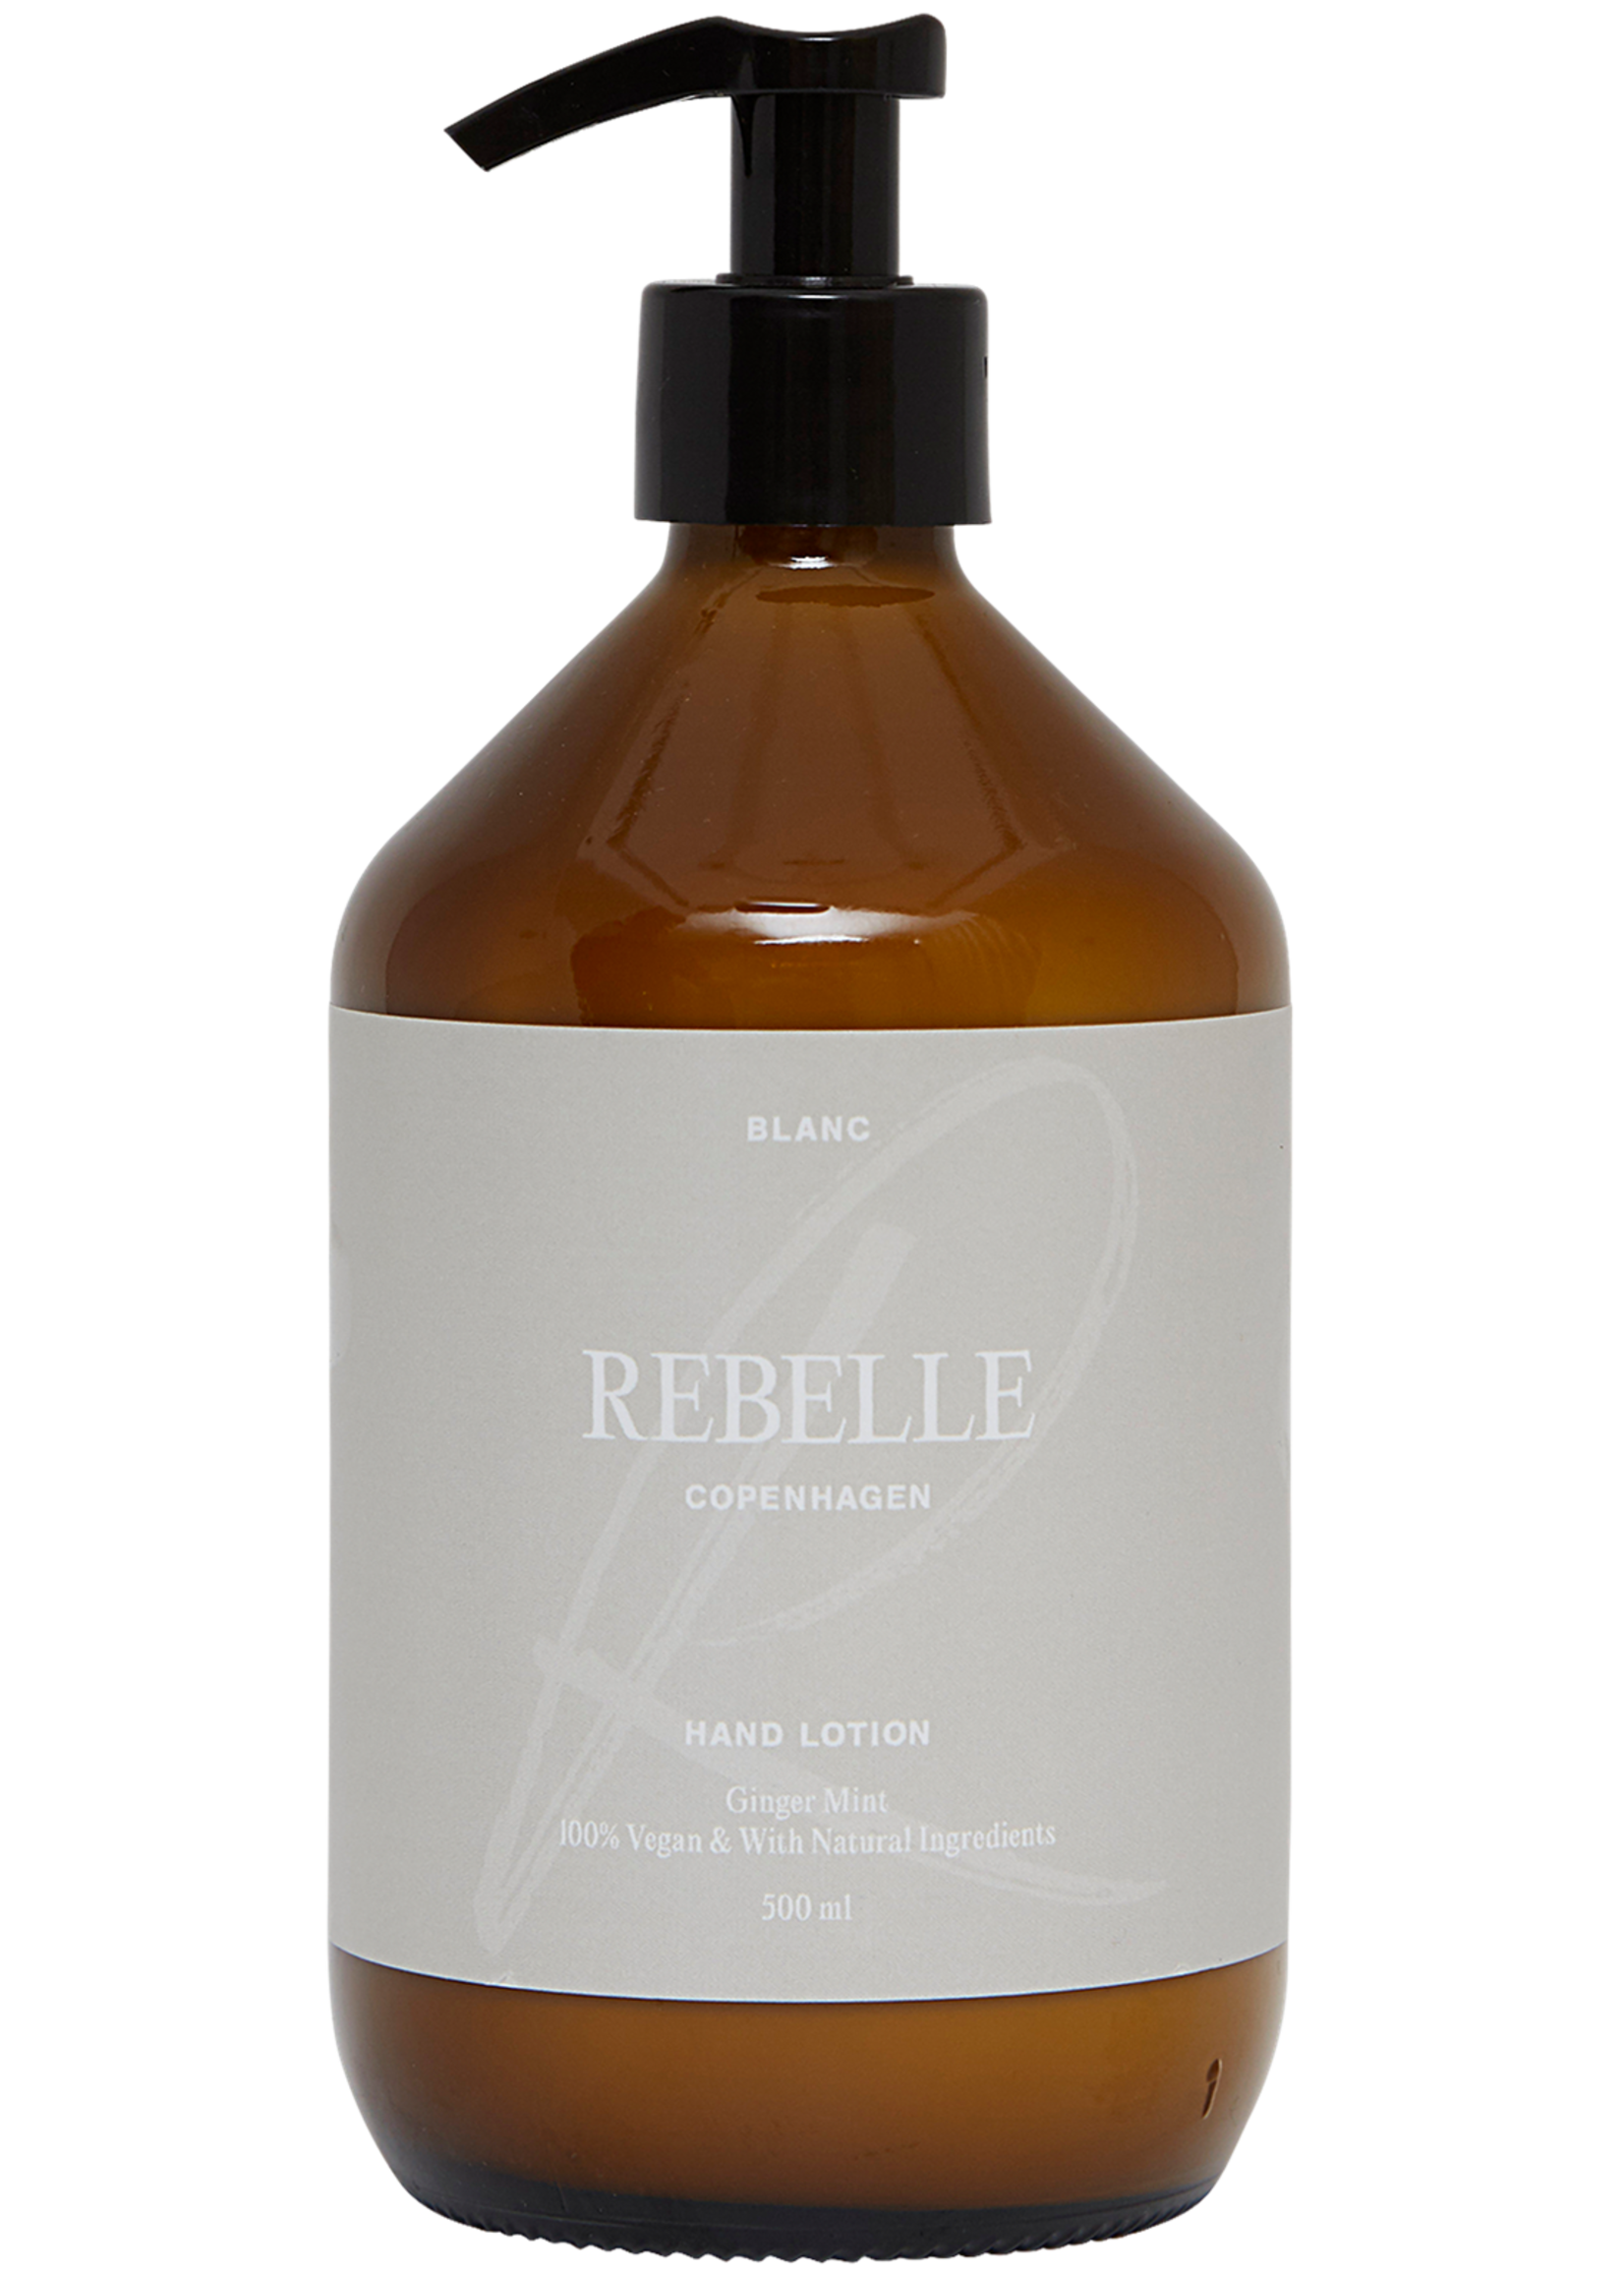 Rebelle Hand Lotion